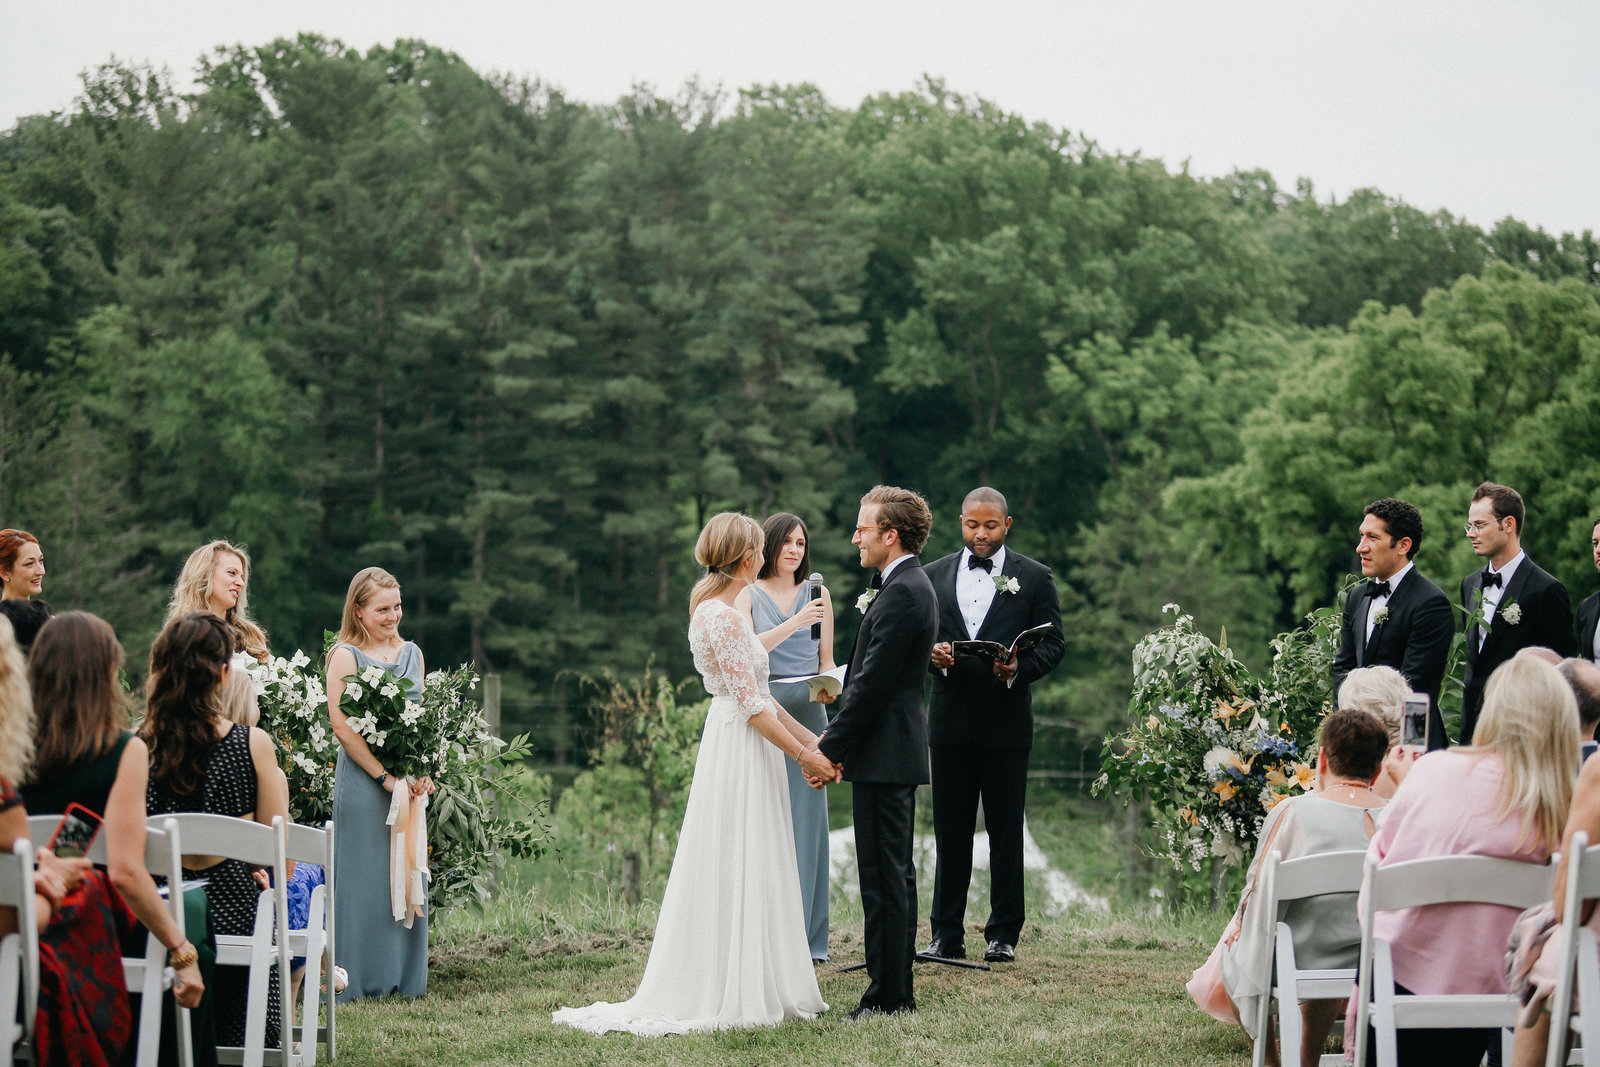 Bride and groom pictured together at their wedding ceremony in the countryside.